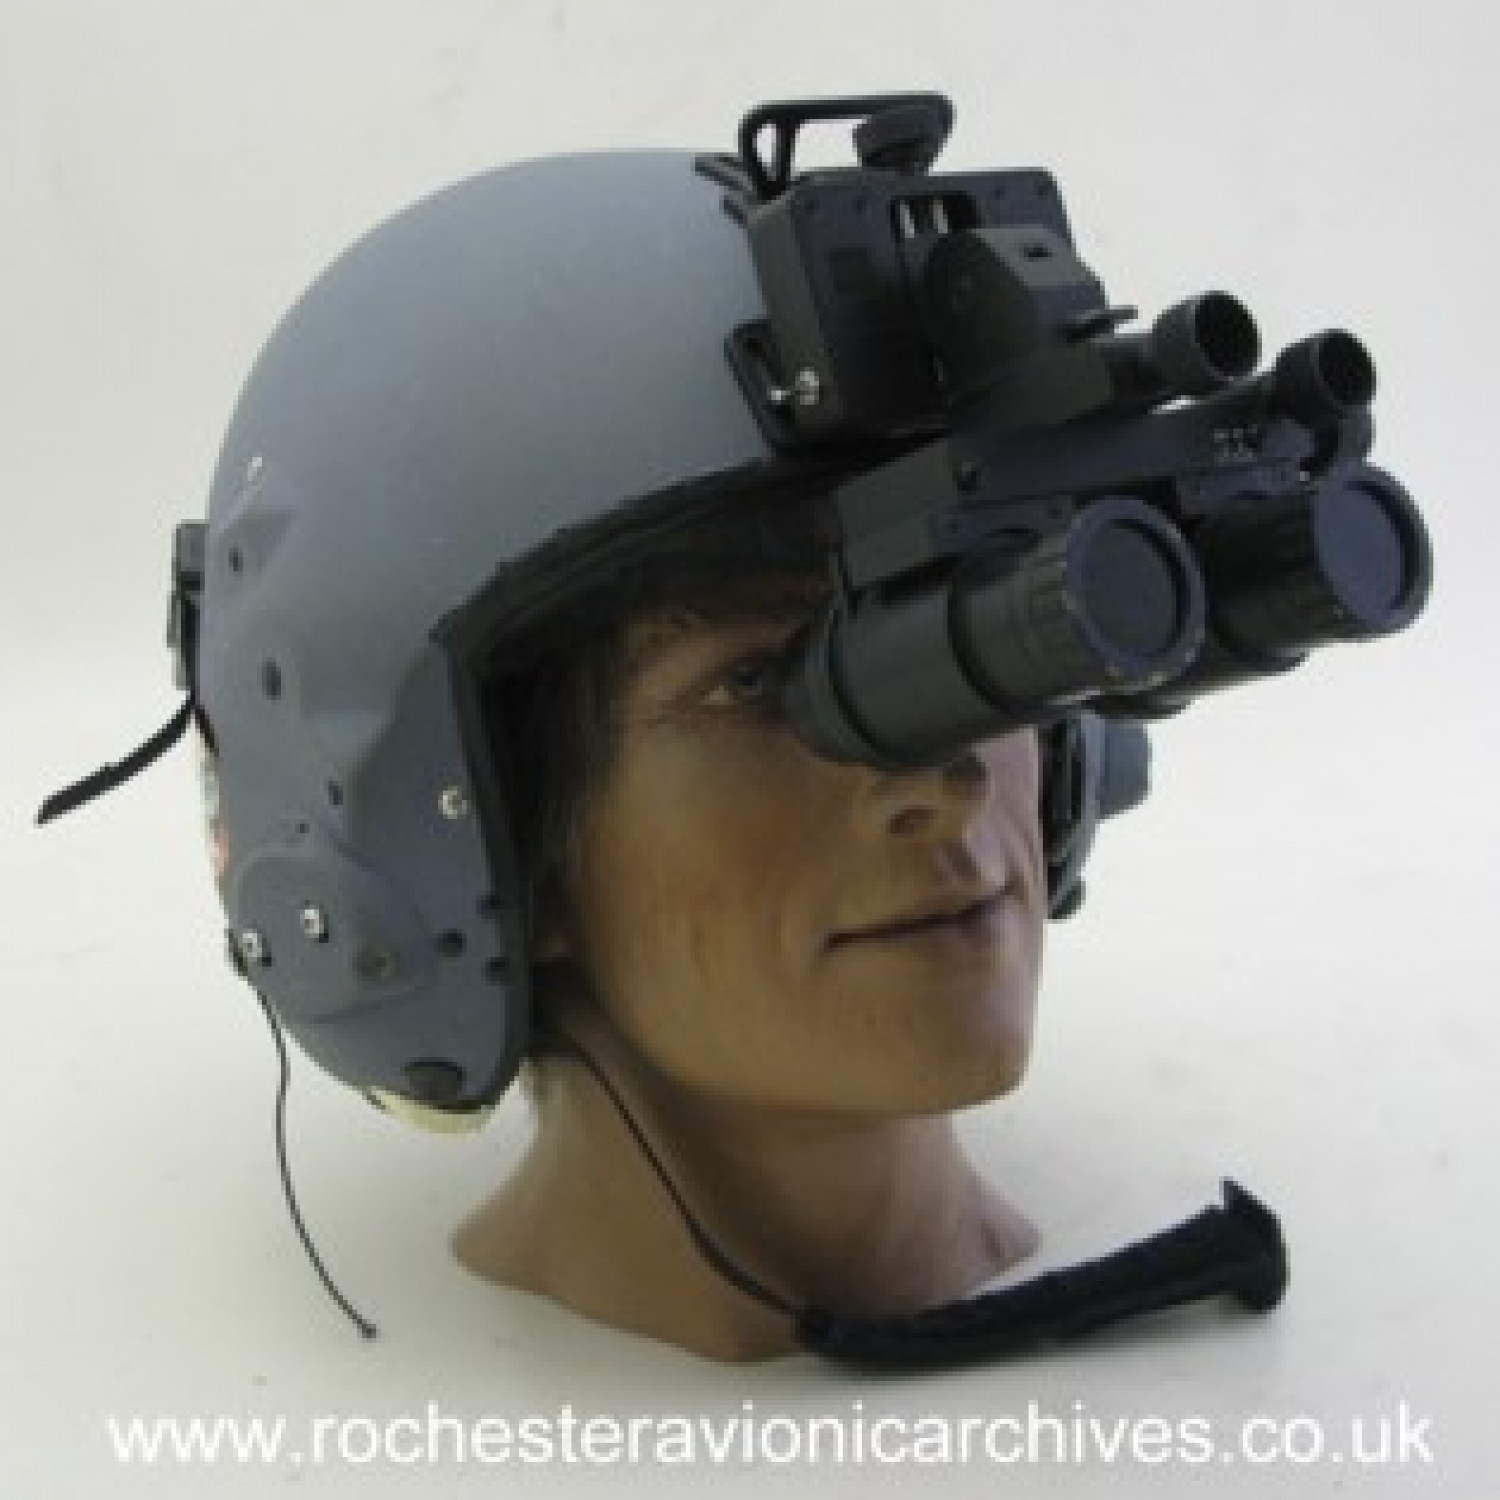 Helmet with Ground Owl Goggles